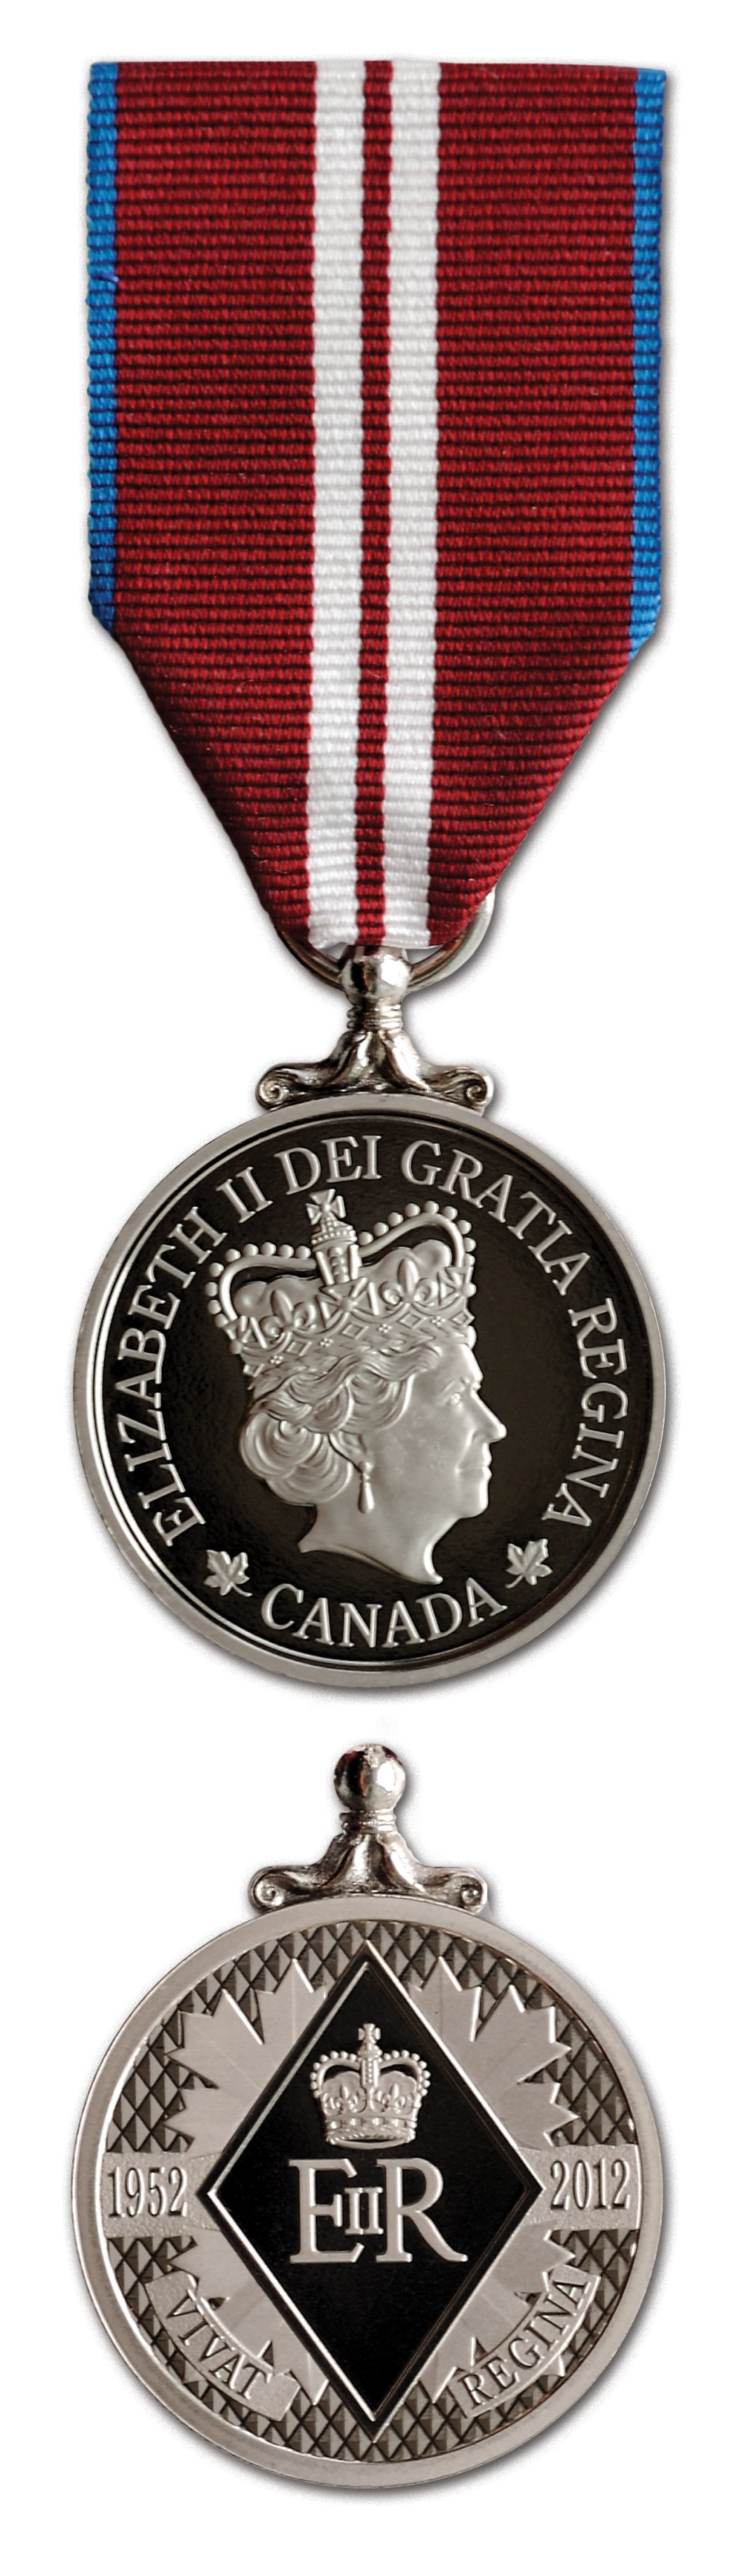 For his work in this area for the last twenty-five years, Gary was the recipient of The Queen Elizabeth II Diamond Jubilee Medal